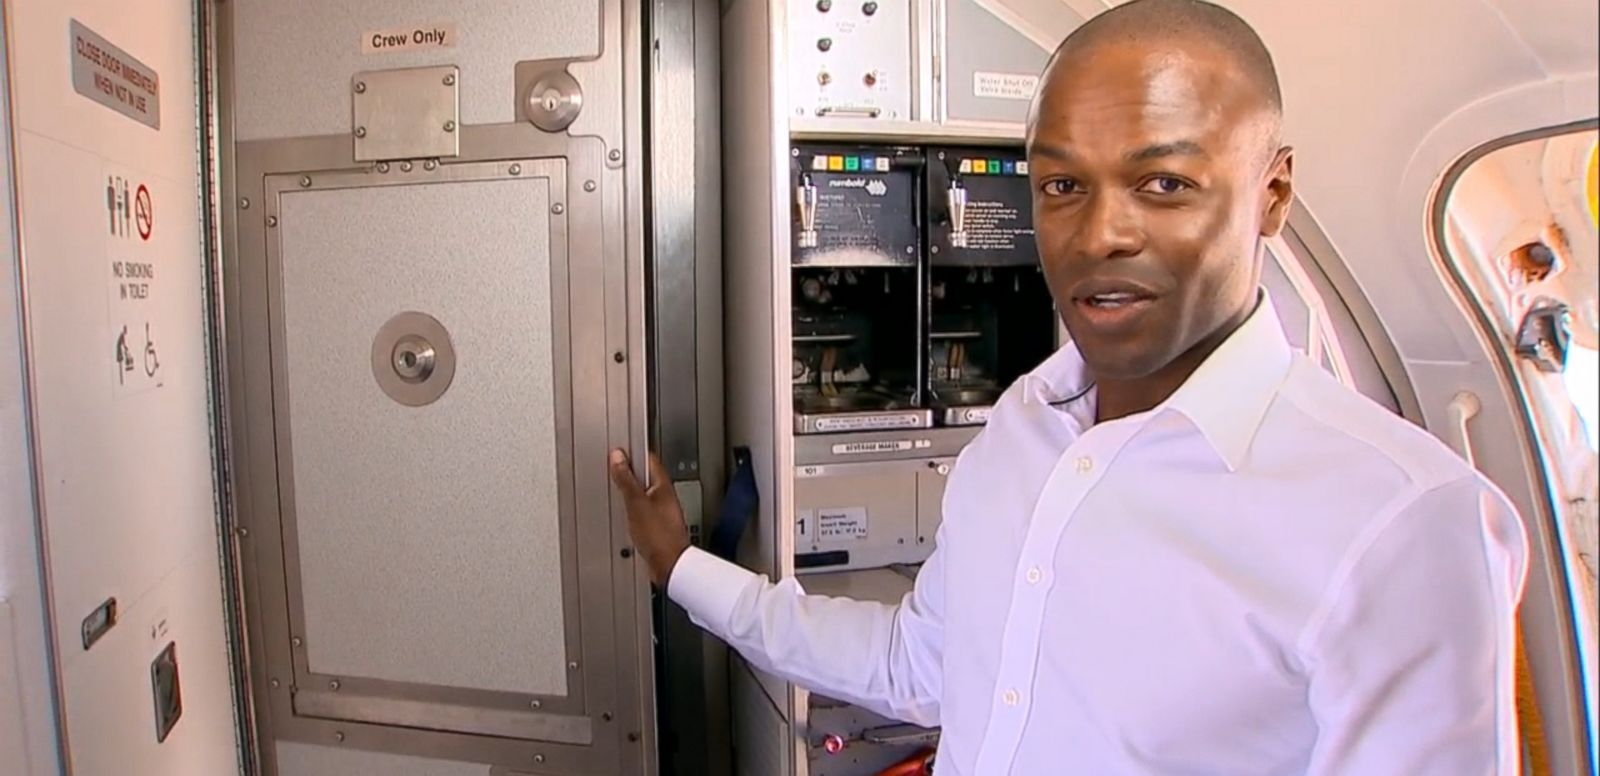 VIDEO: ABC News' Kendis Gibson visits an airplane graveyard in California to learn how Andreas Lubitz could have locked his fellow Germanwings pilot out of the cockpit, allowing him to allegedly crash the plane in the French Alps.